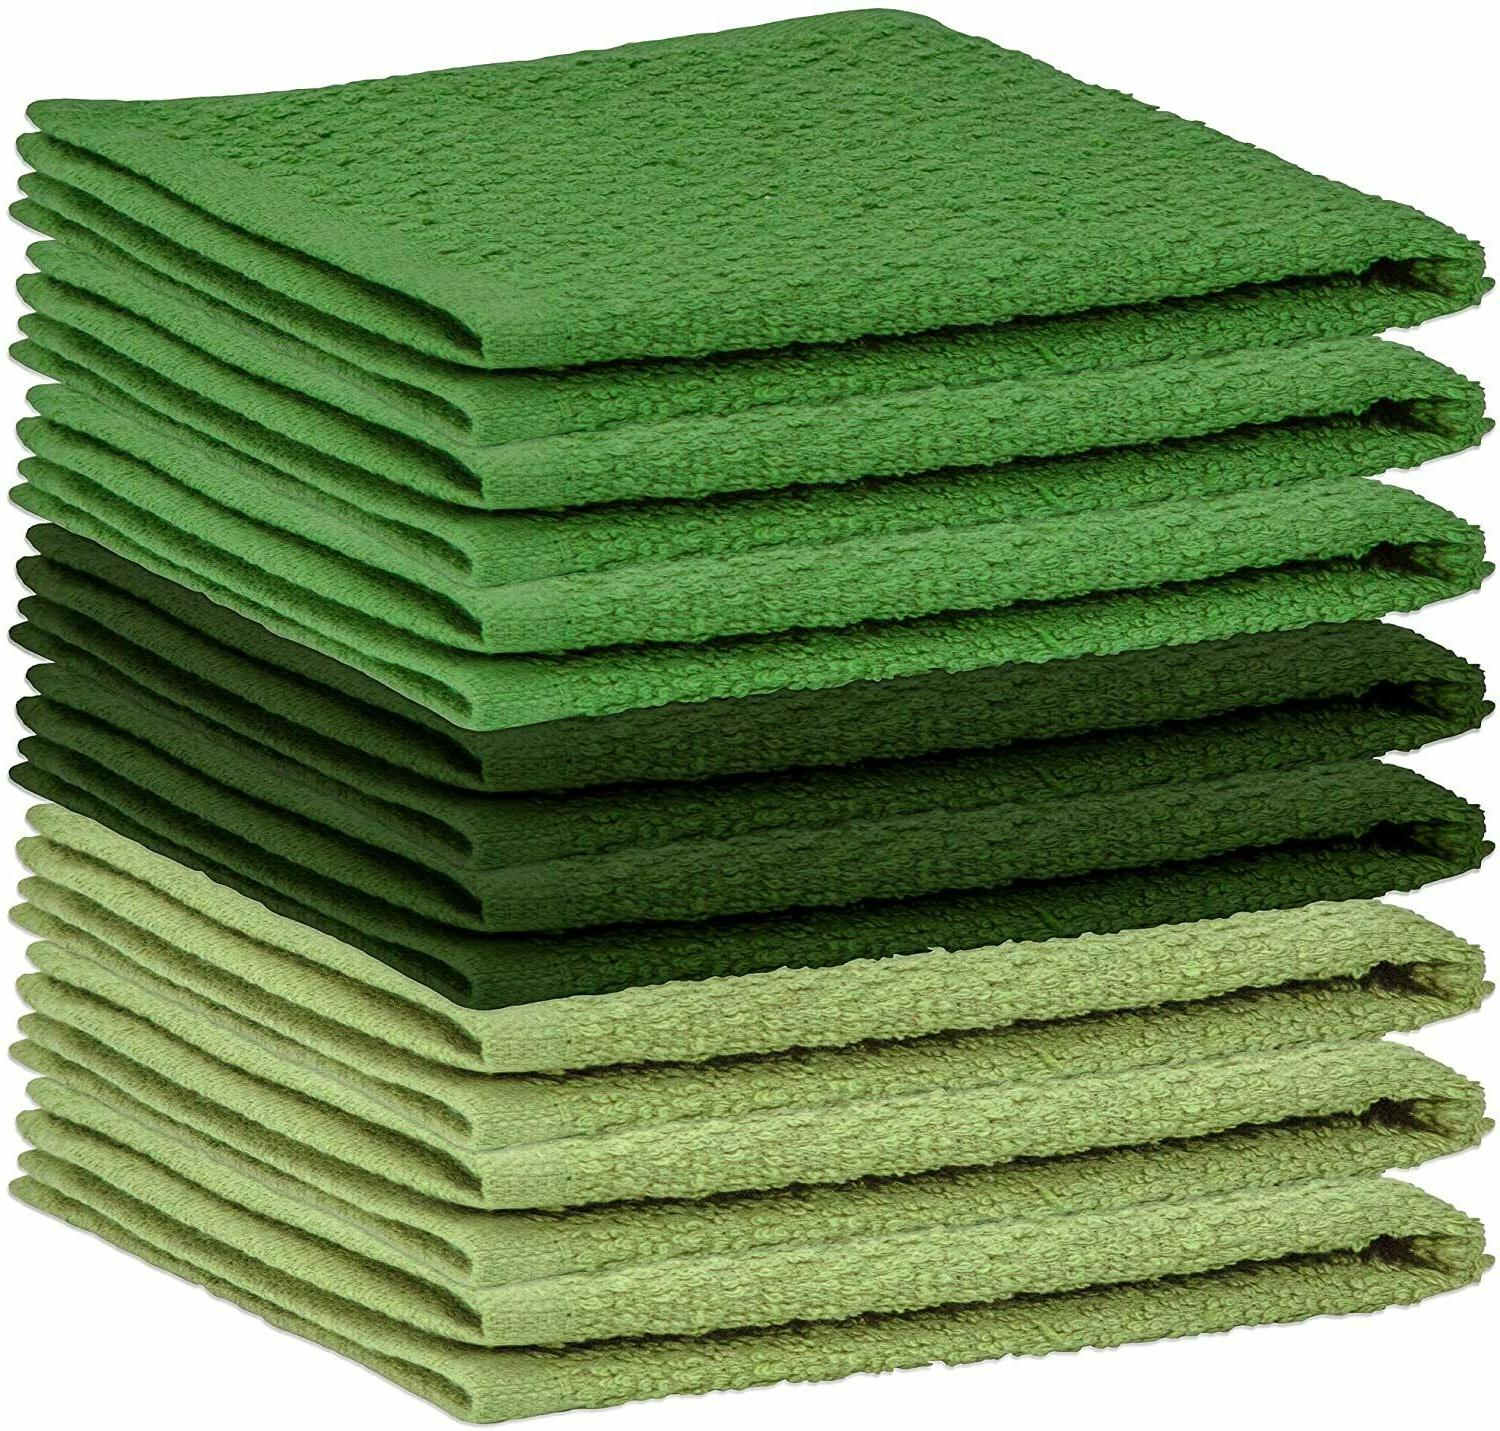 8 Cloth Luxurious Absorbent